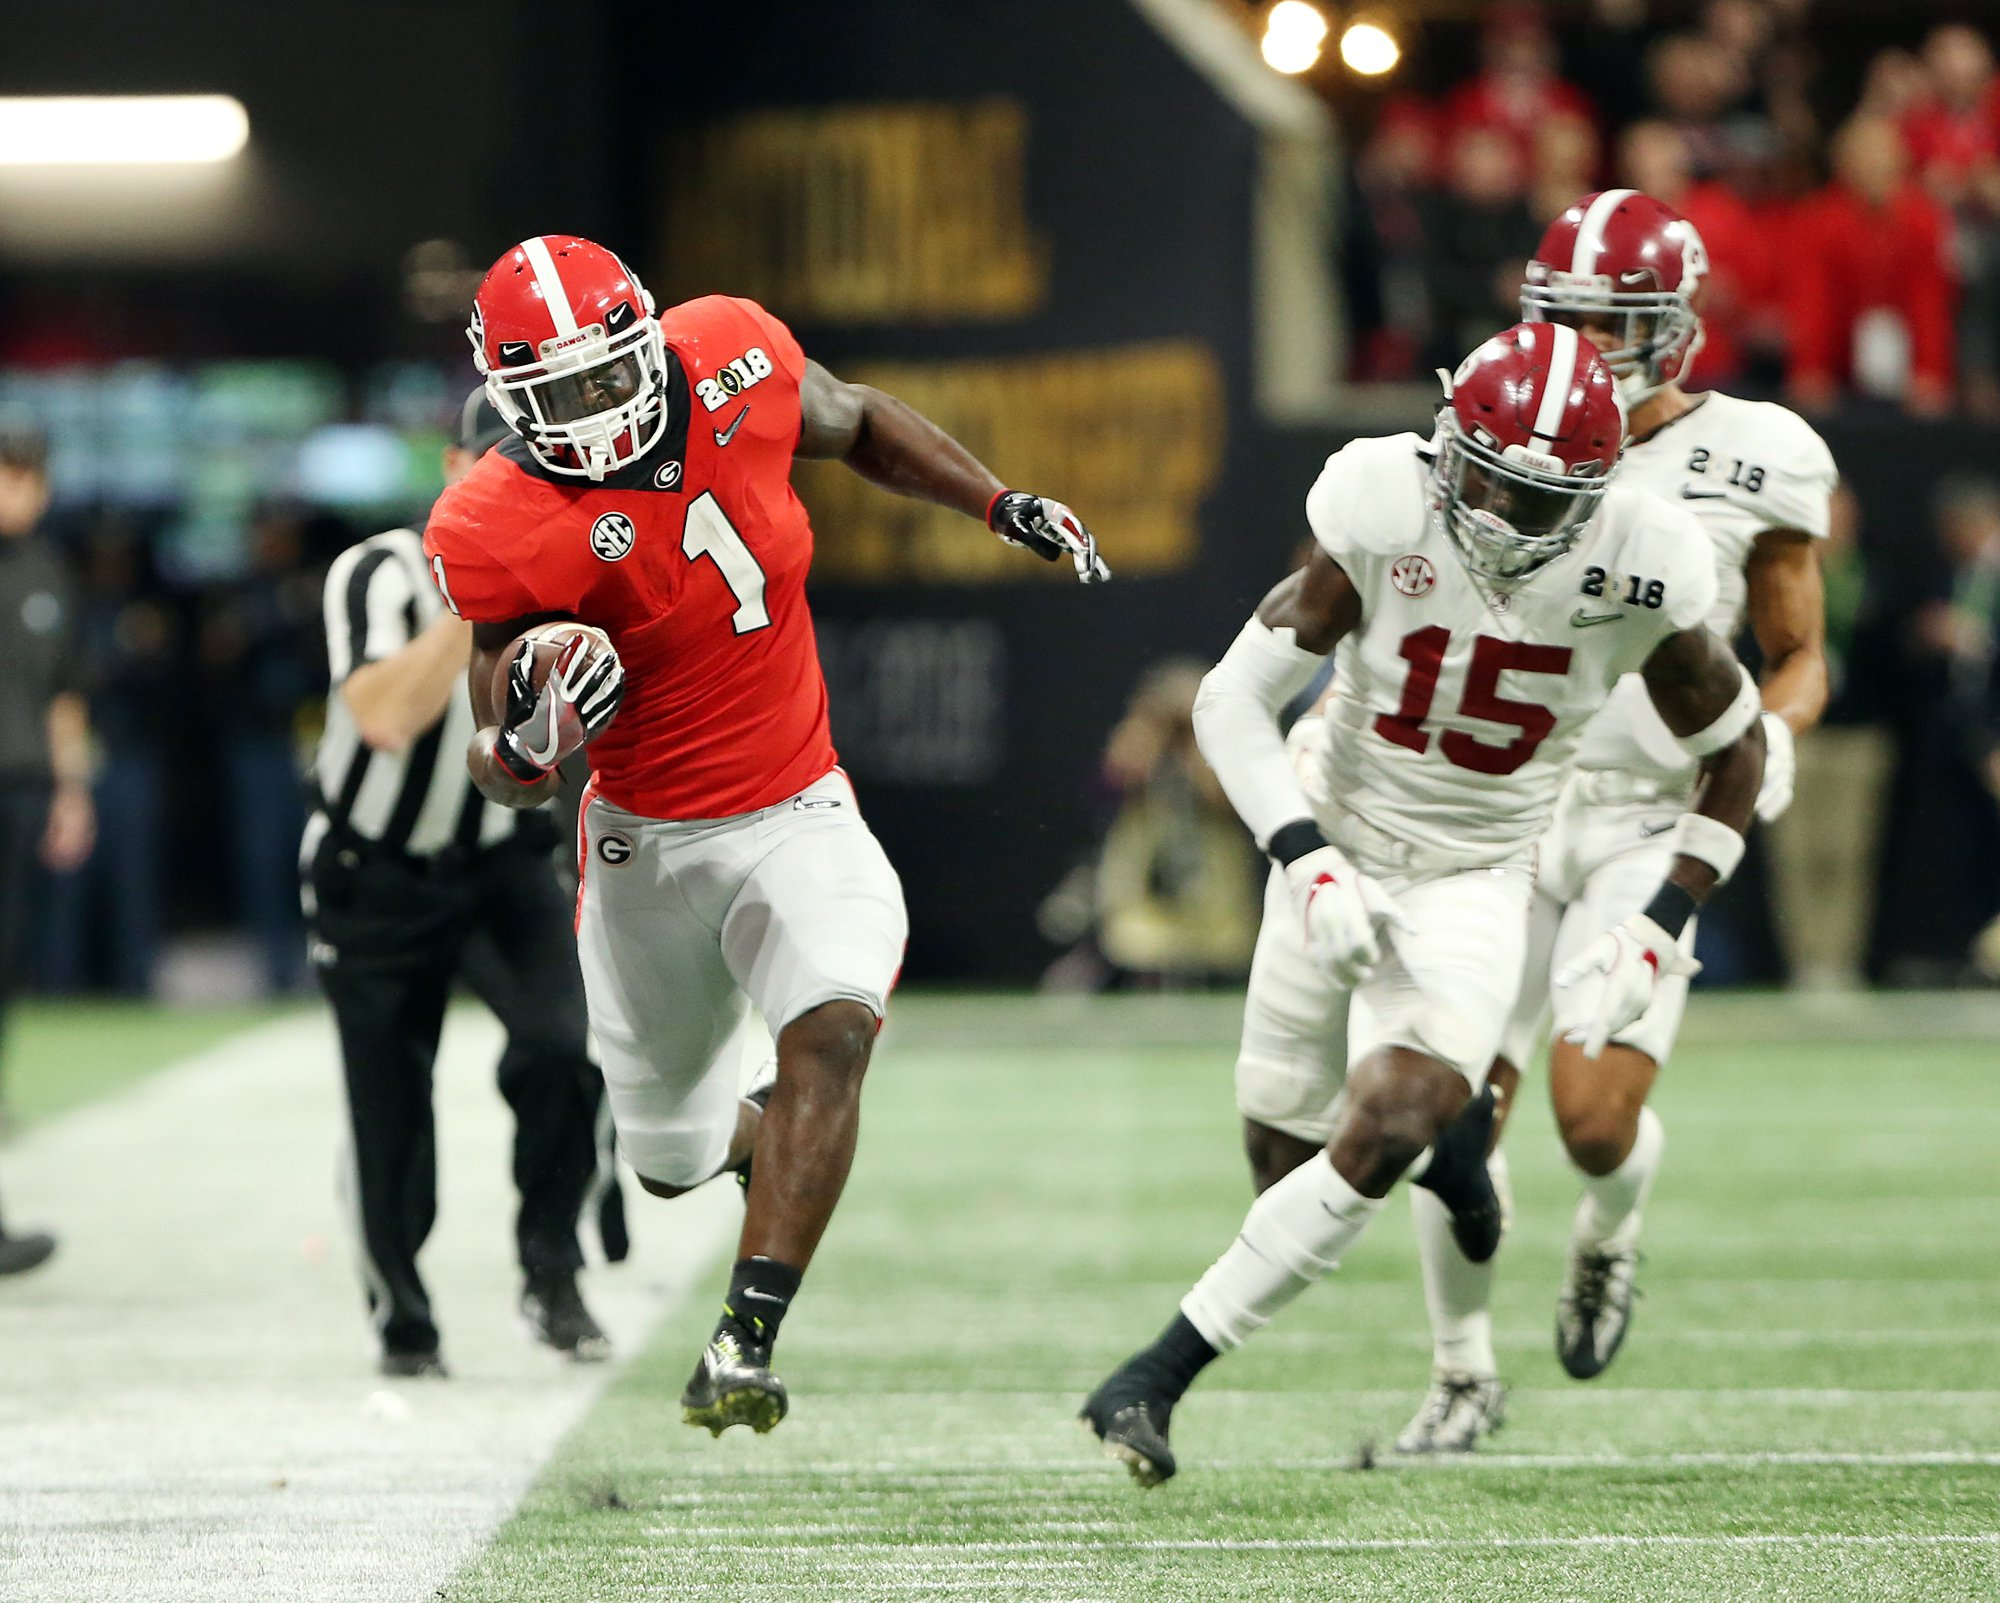 Sony Michel tip-toes down the sideline for extra yards after a catch